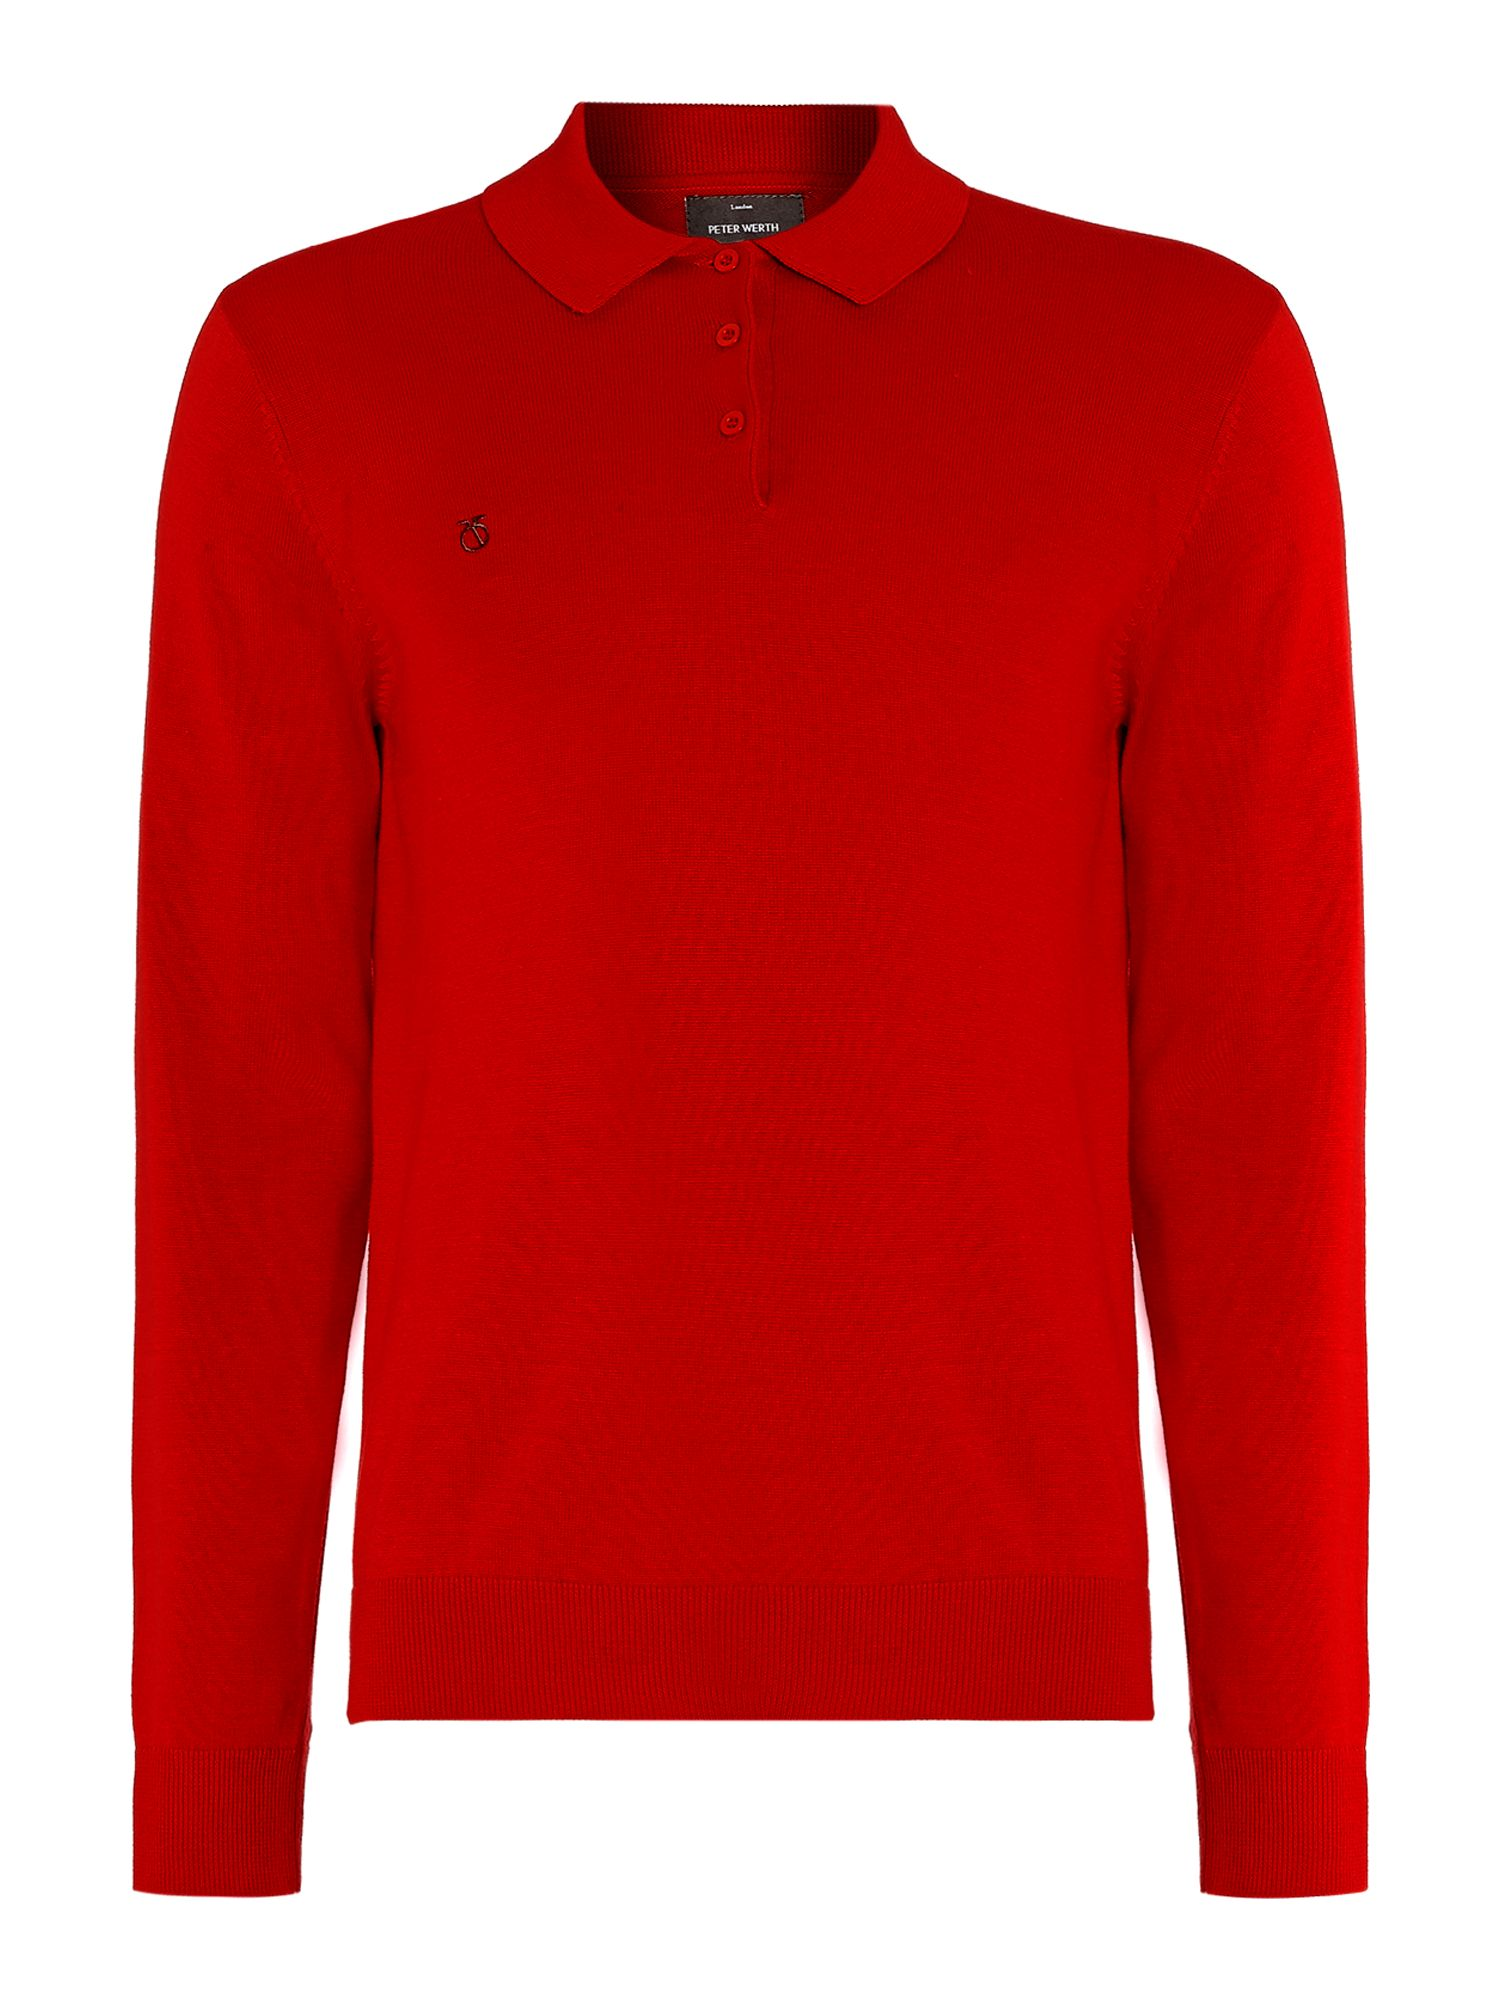 Hemmingford cut knitted polo shirt